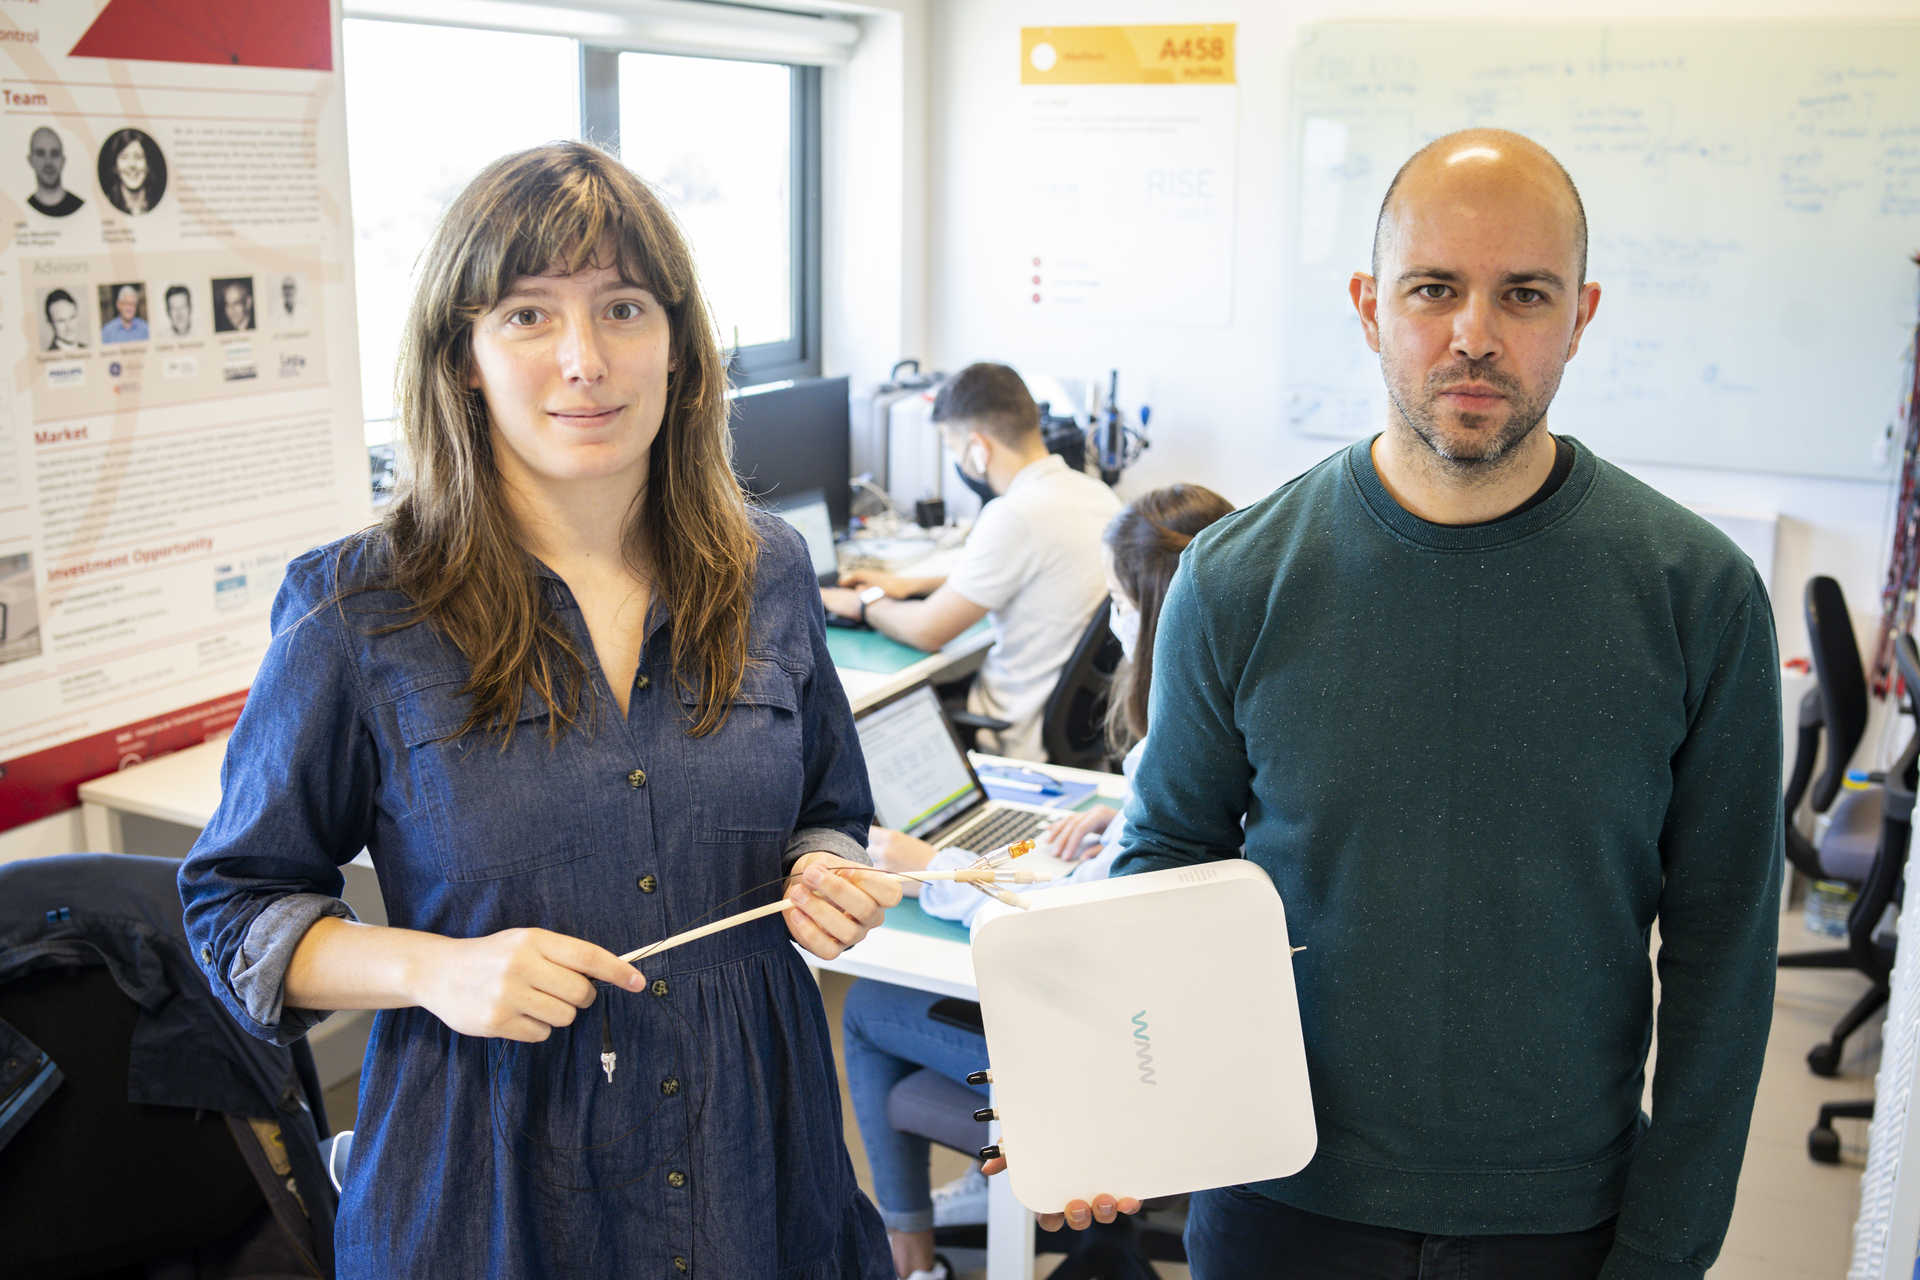 Joana melo and Luís Moutinho with one of the prototypes made in PCI